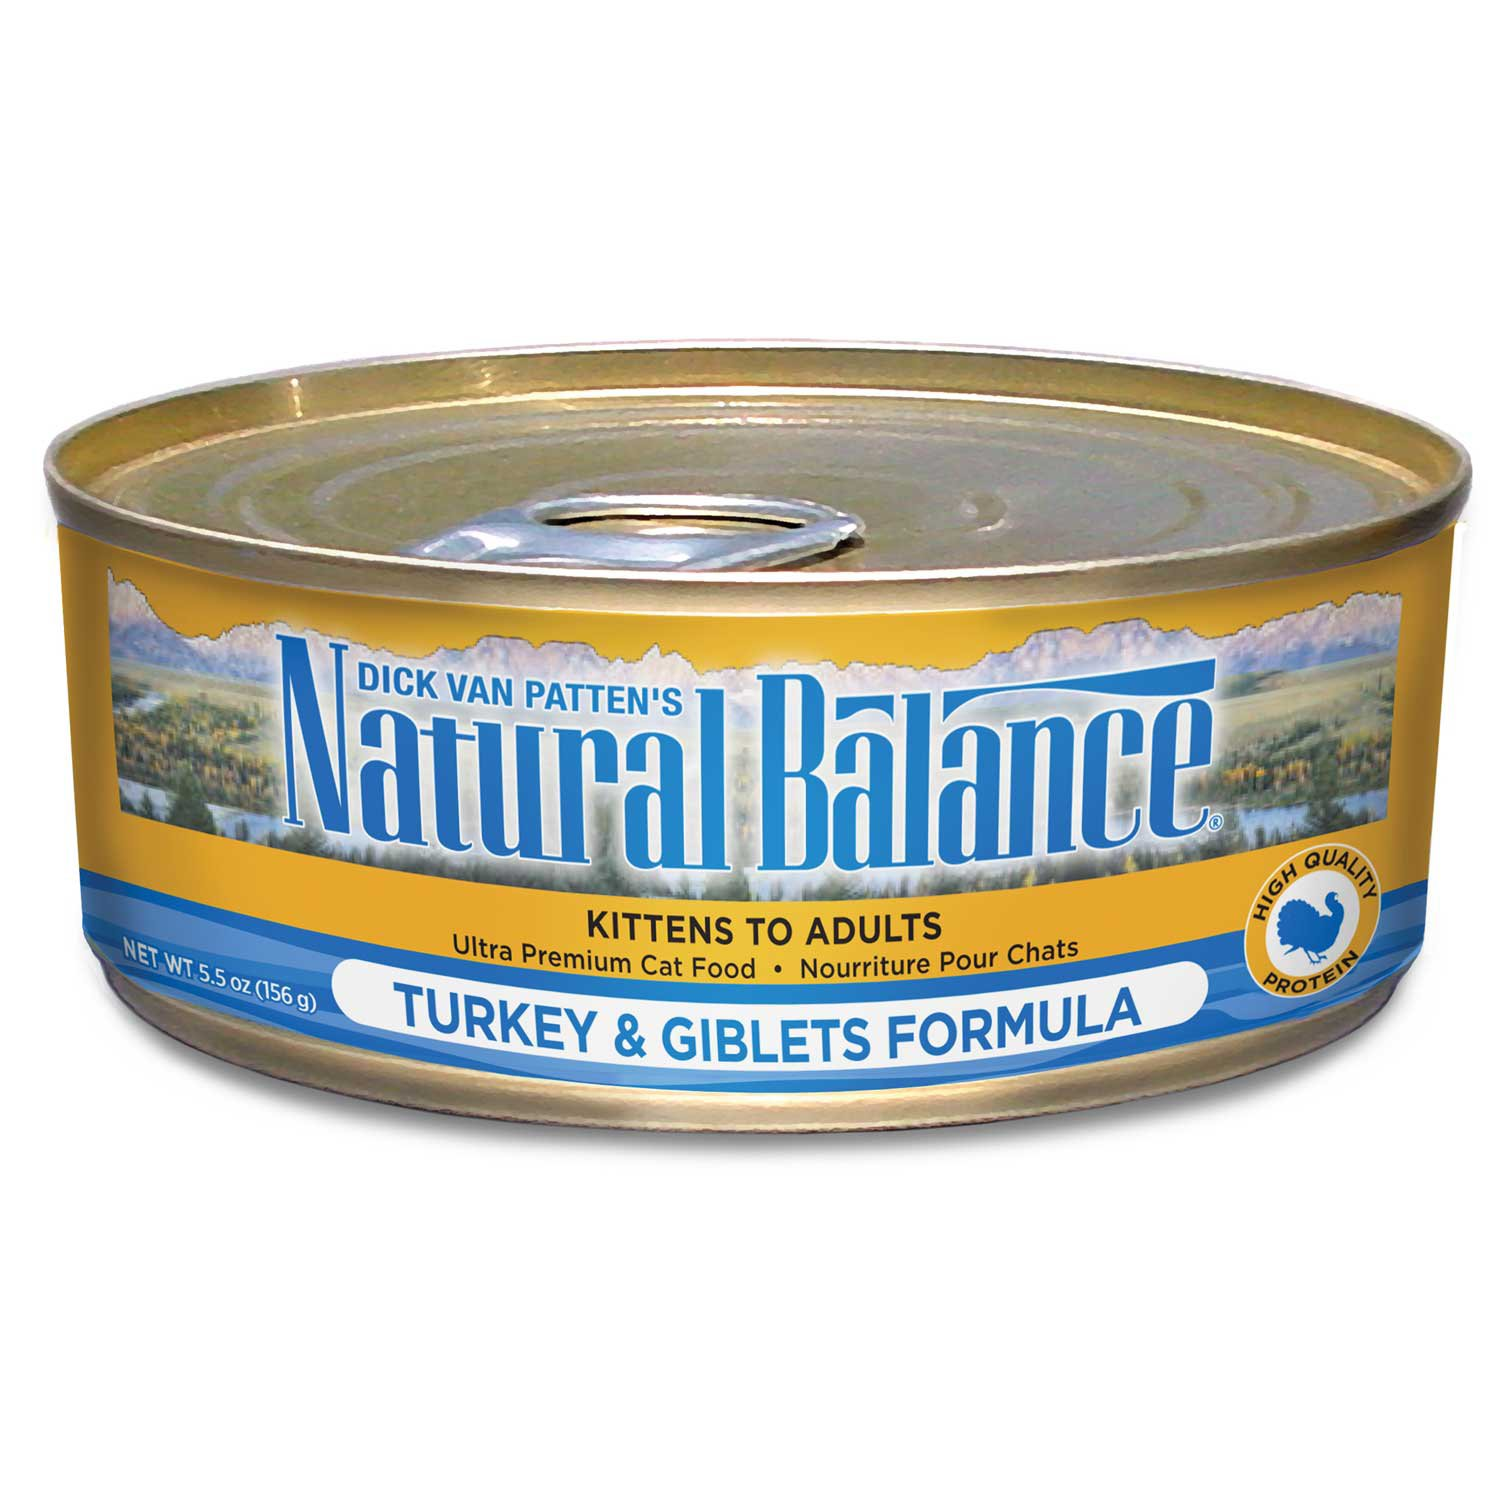 Natural Balance Ultra Premium Canned Cat Food Turkey & Giblets Formula